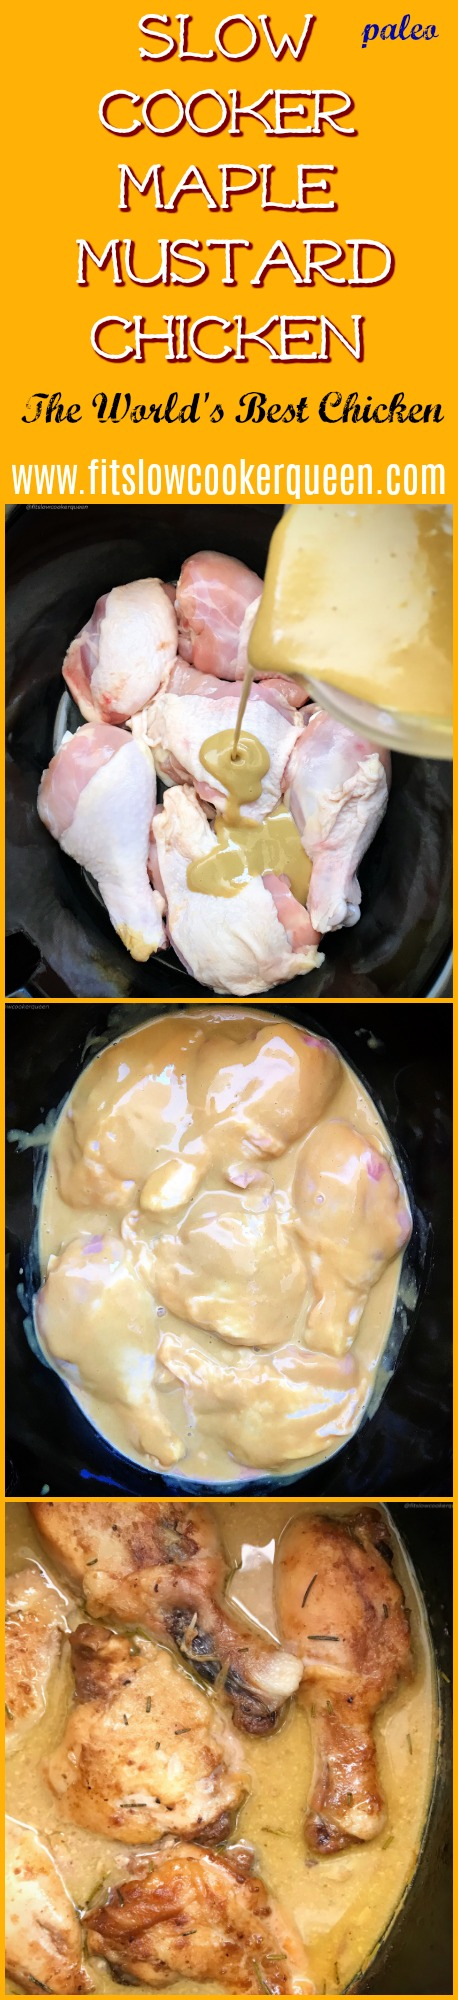 """There are only 5 ingredients in this popular maple mustard chicken recipe, also known as, """"The World's Best Chicken"""". Made in the slow cooker, this paleo version is fast & flavorful."""